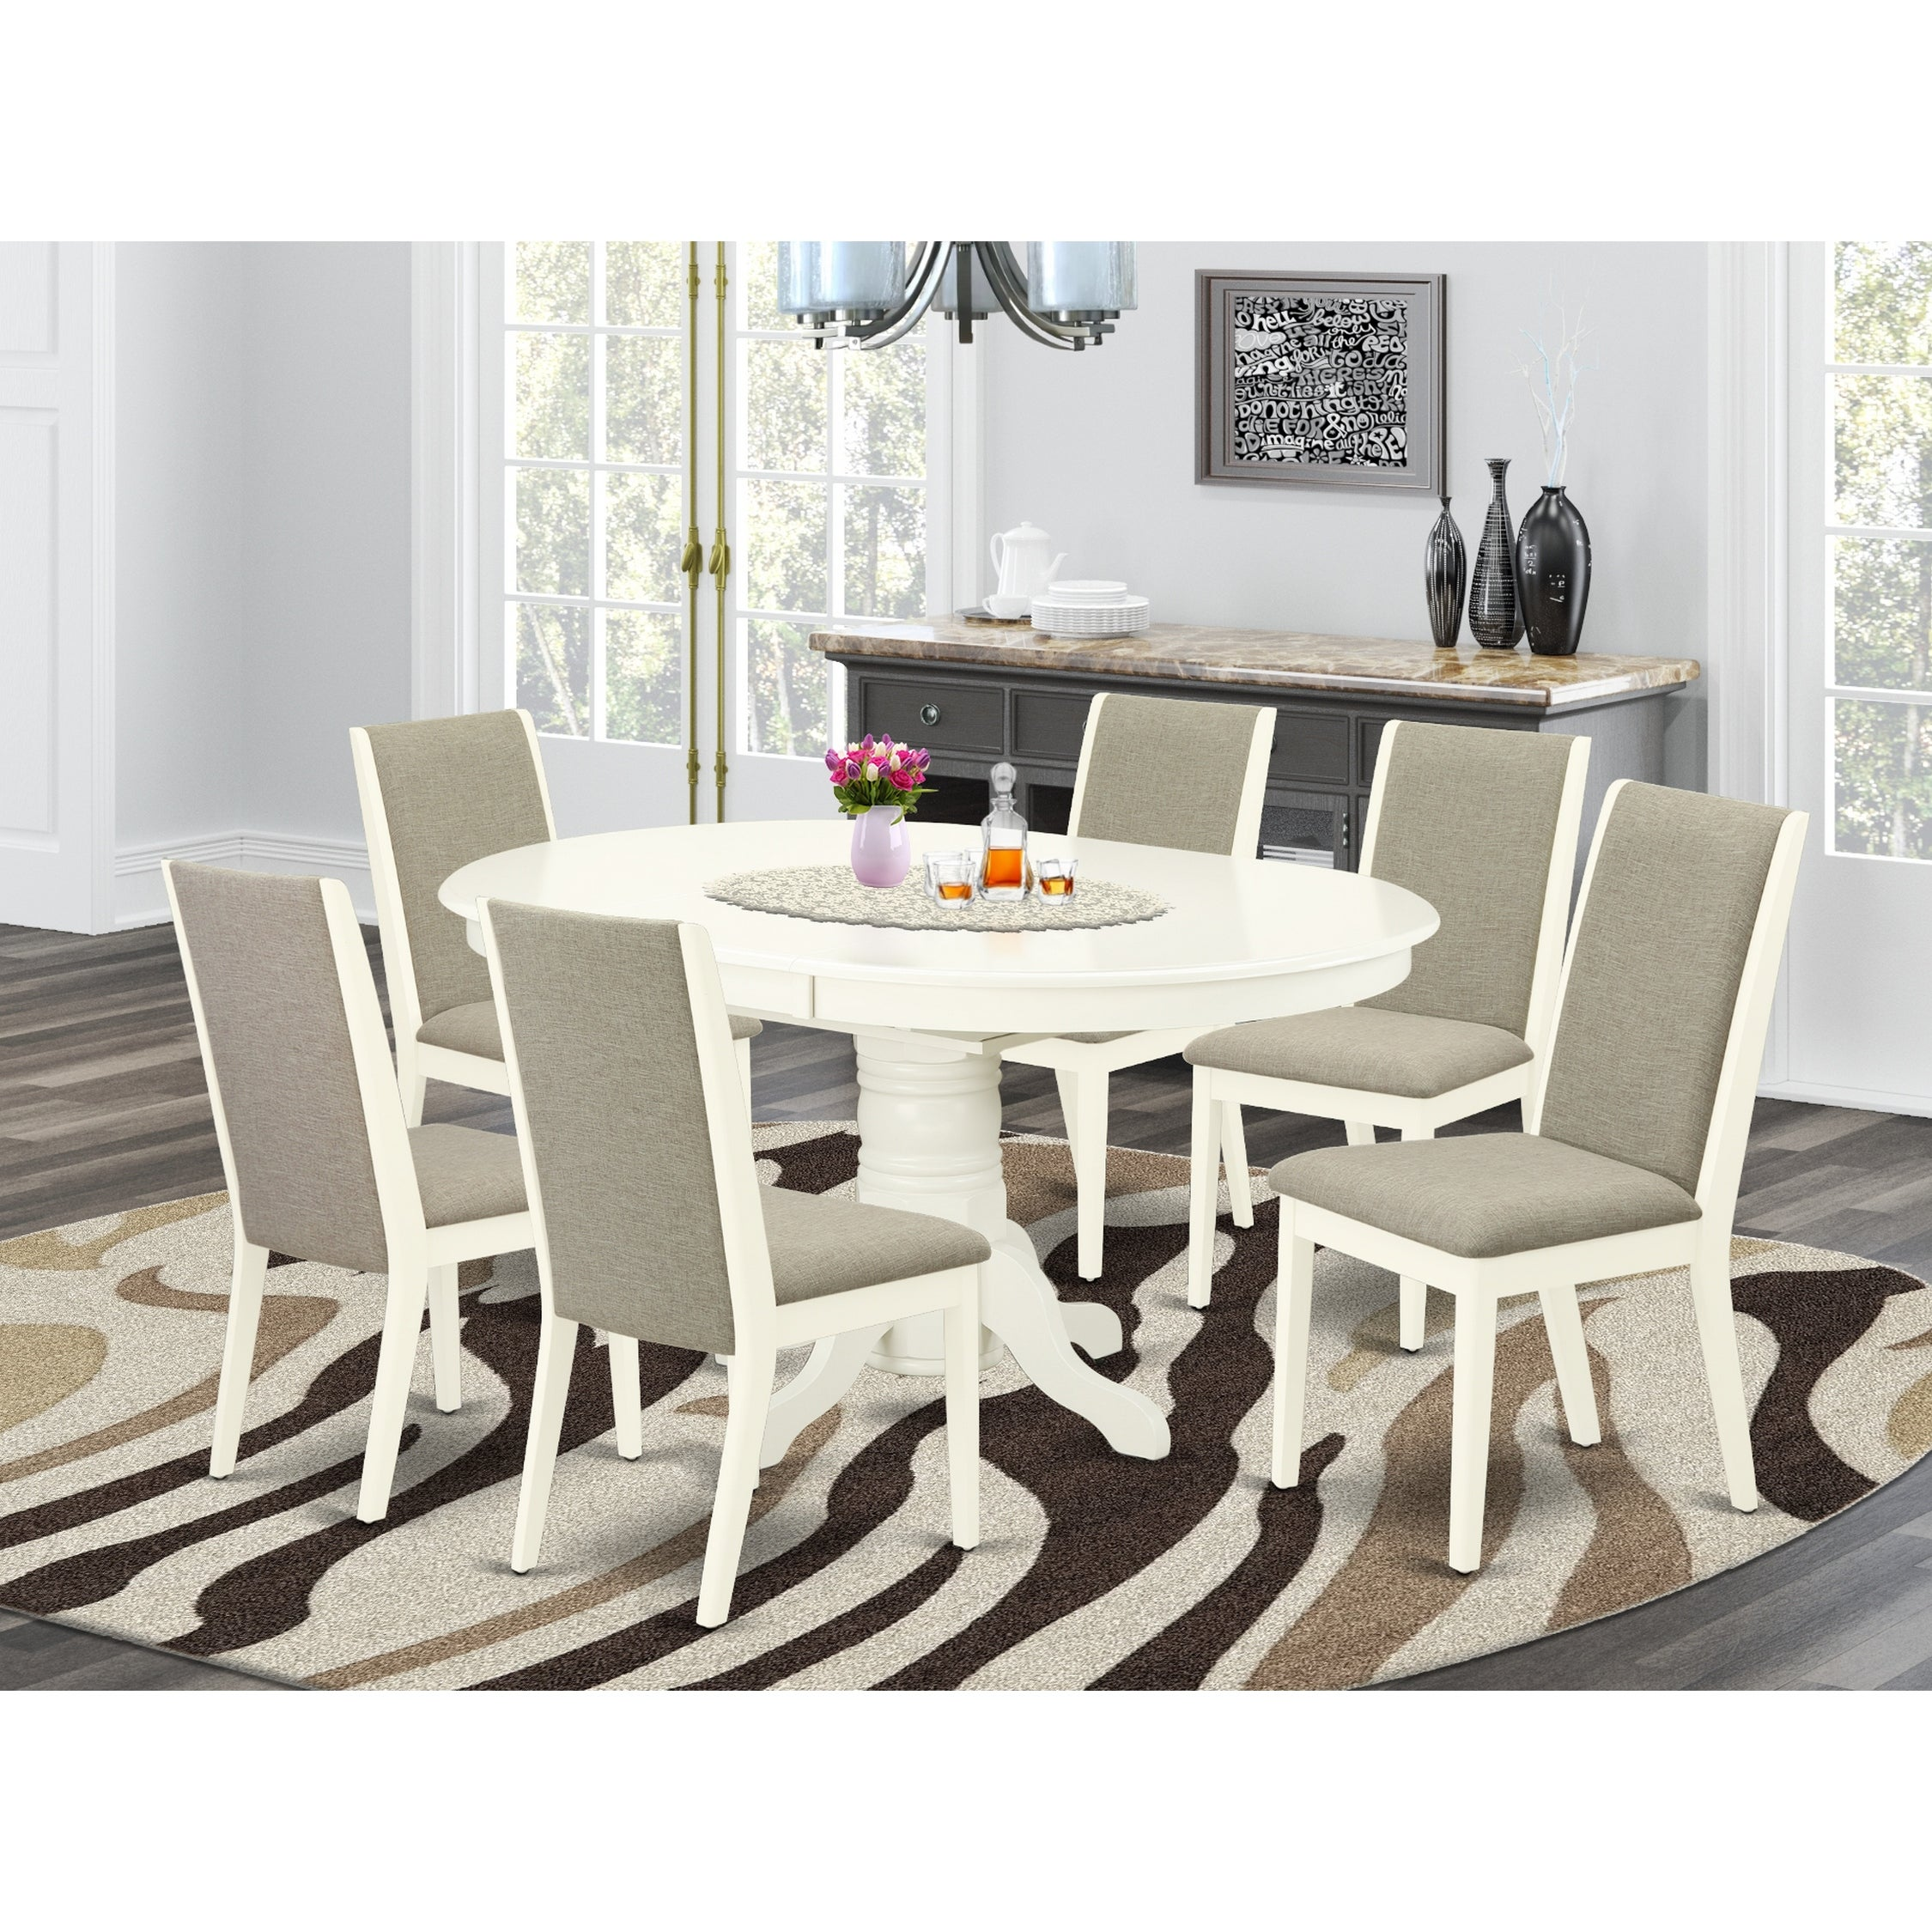 Picture of: Shop Avla7 Lwh 06 7 Piece Dining Set 6 Dining Chairs And Butterfly Leaf Table High Back Linen White Finish Overstock 32085538